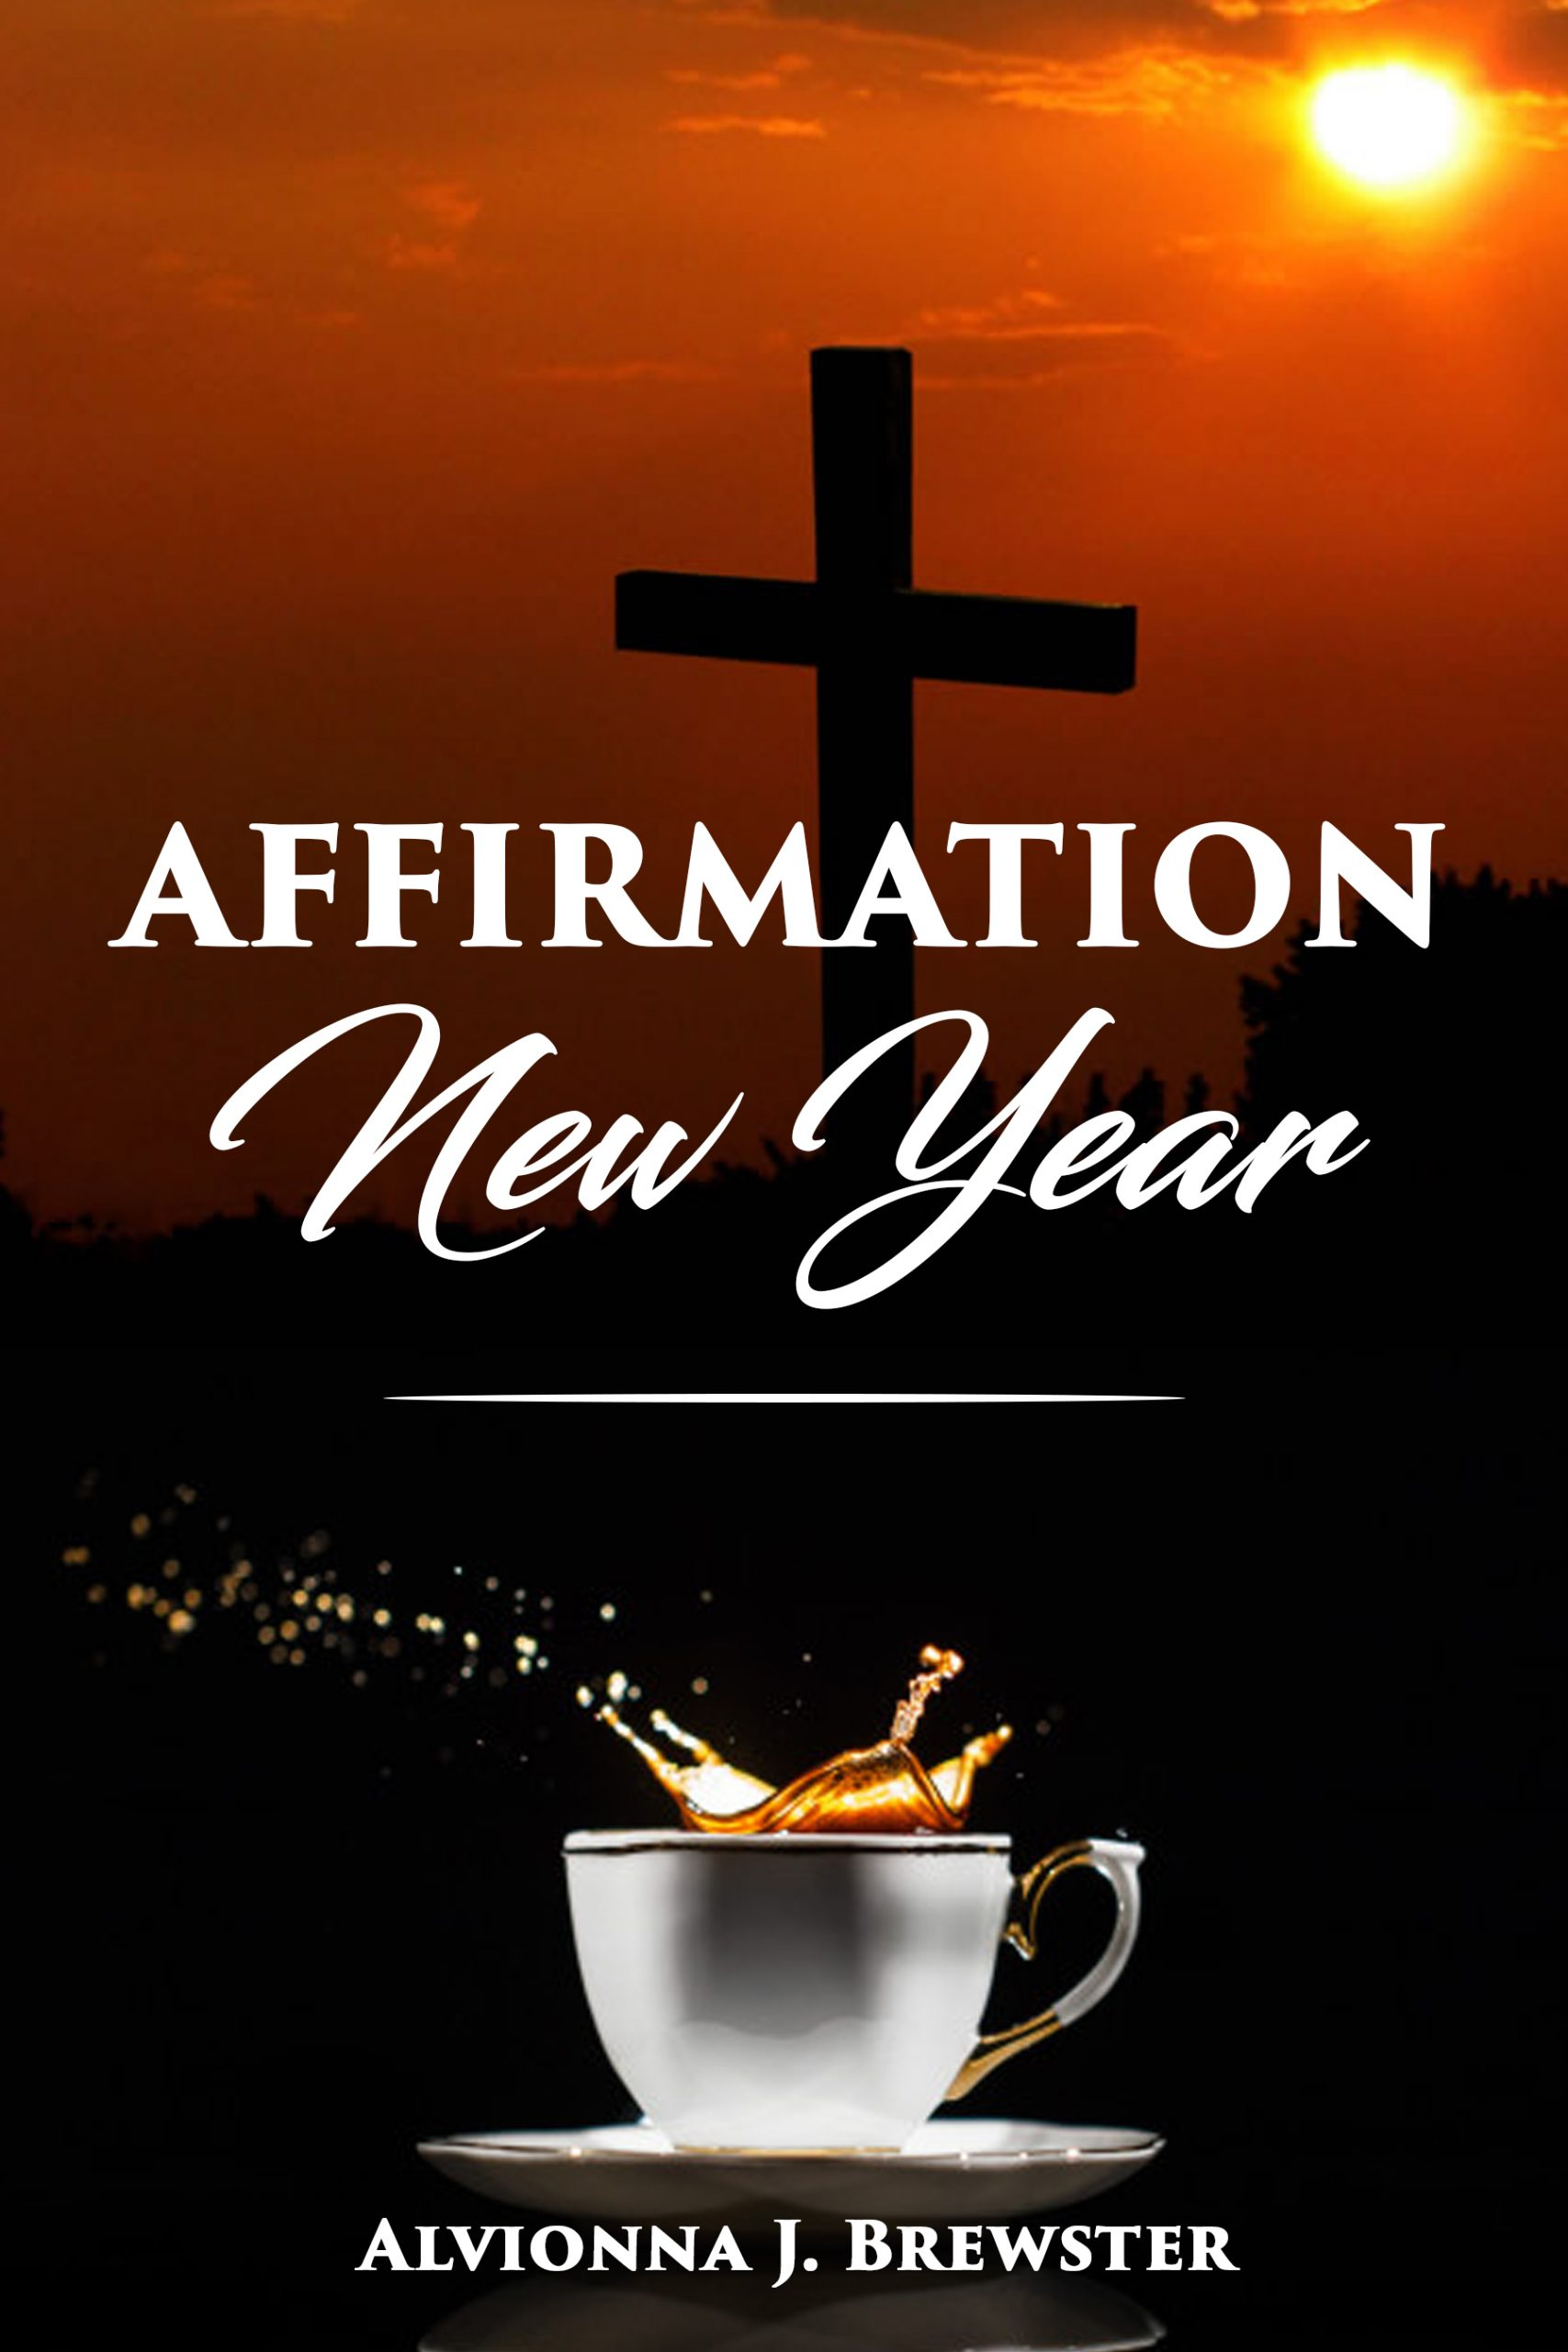 AFFIRMATION NEW YEAR